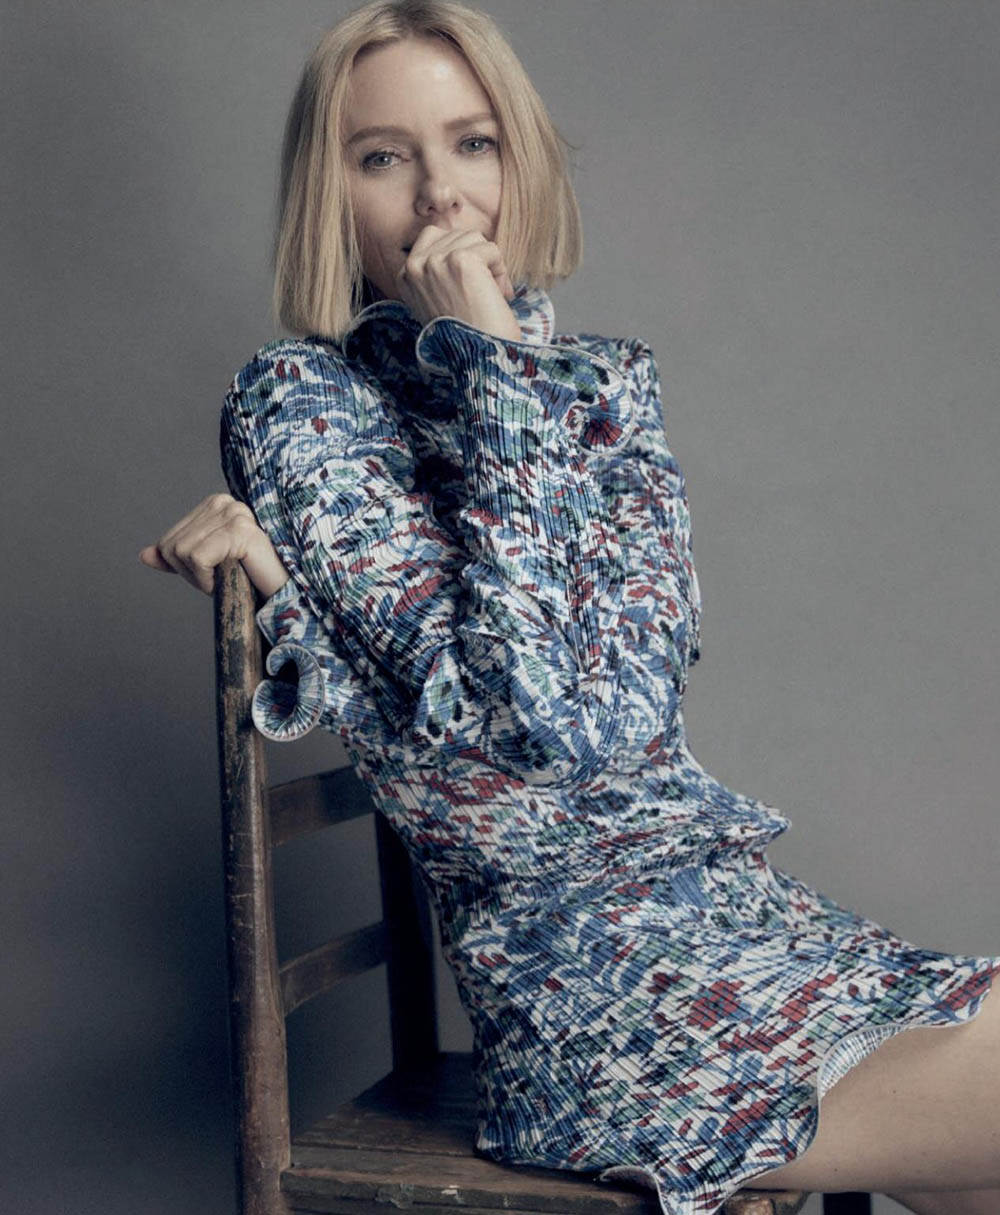 Naomi Watts by Darren McDonald for Harper's Bazaar Spain October 2019